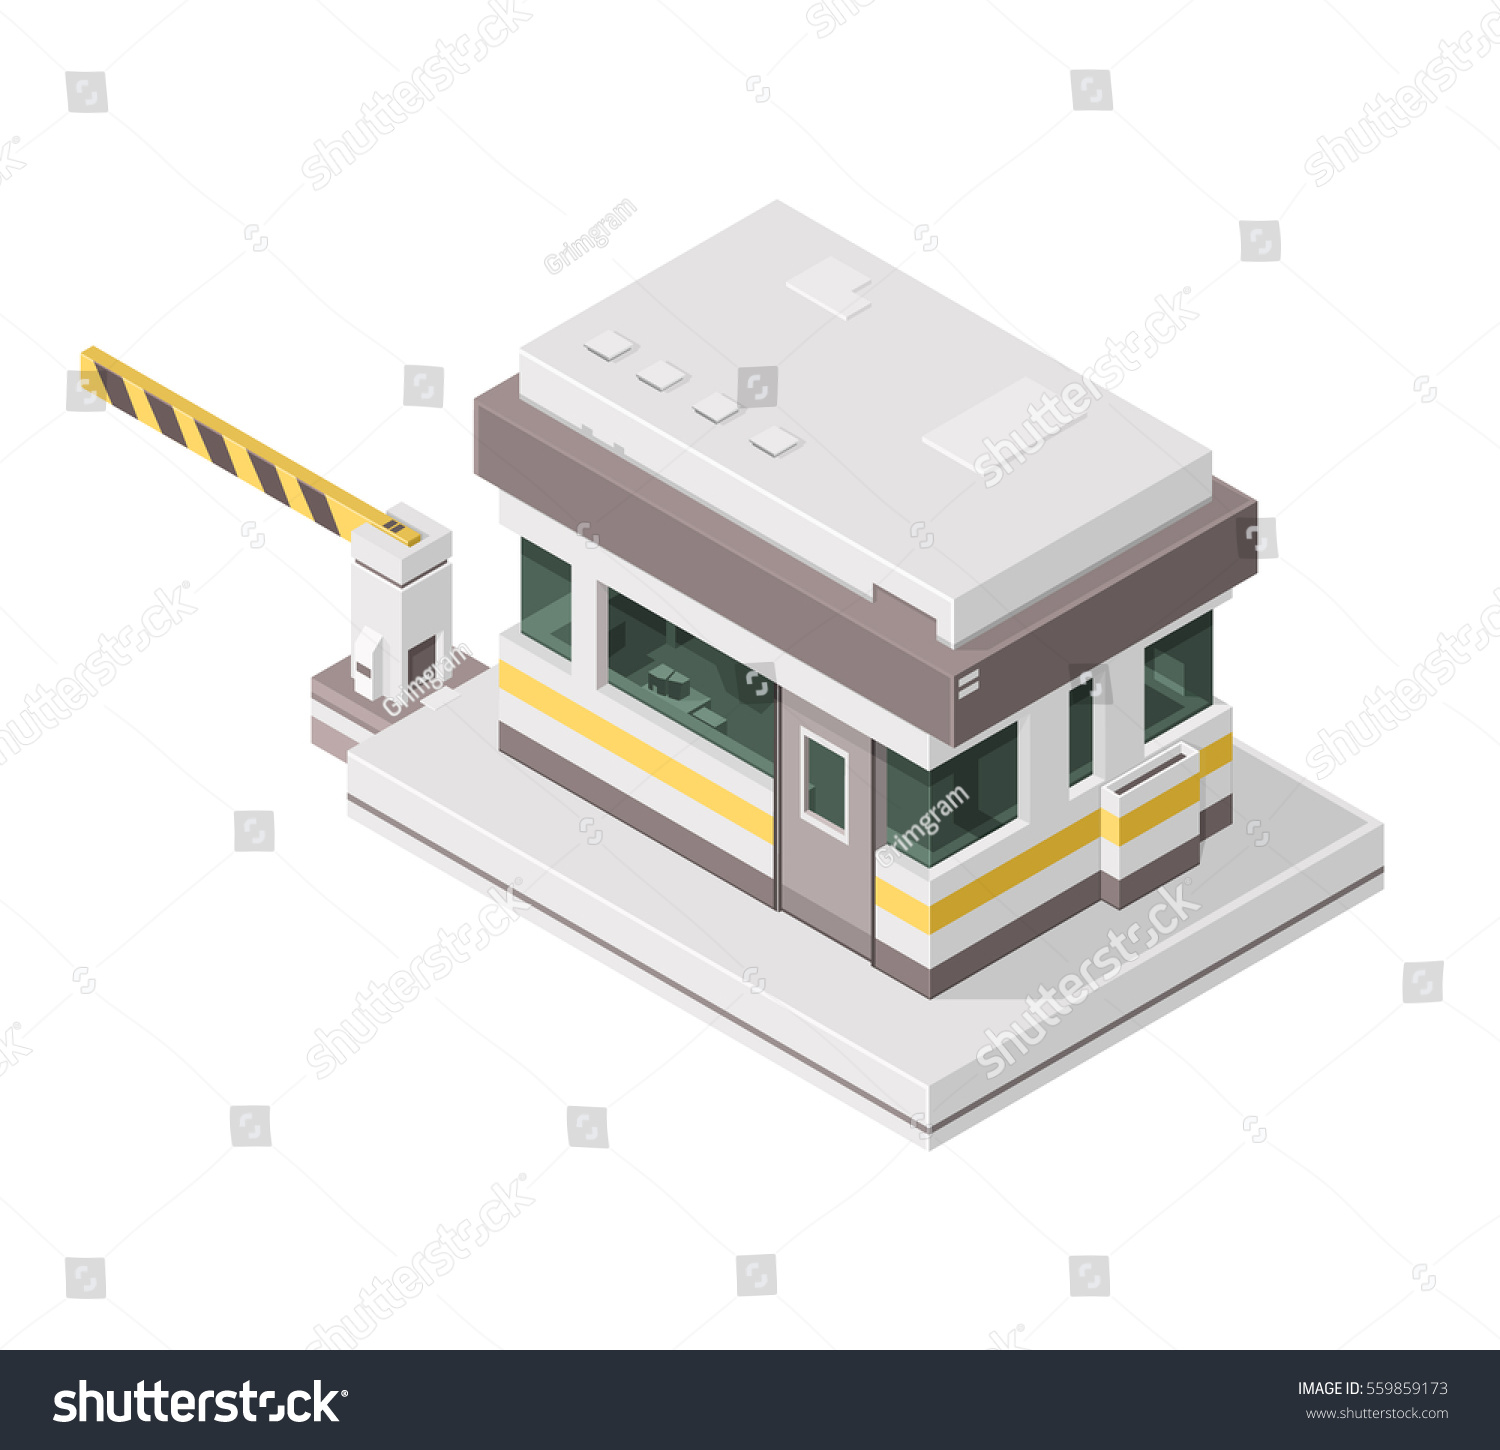 Security Hut Symbol: Vector Illustration Security Kiosk Guarding Check Stock